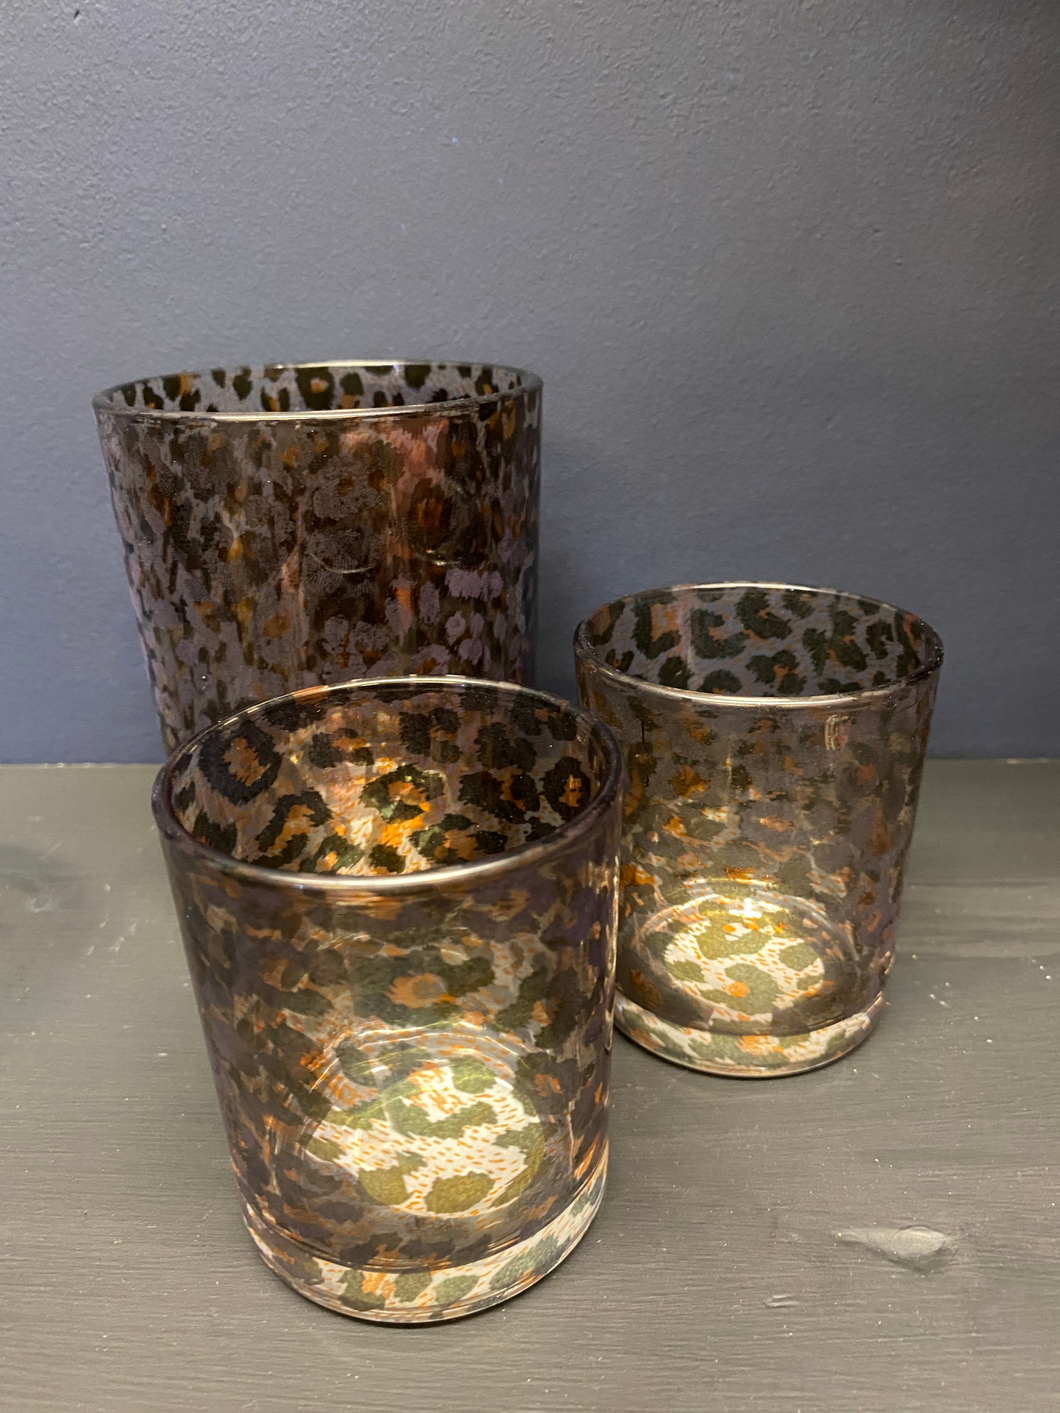 Leopard Print Candle Holder